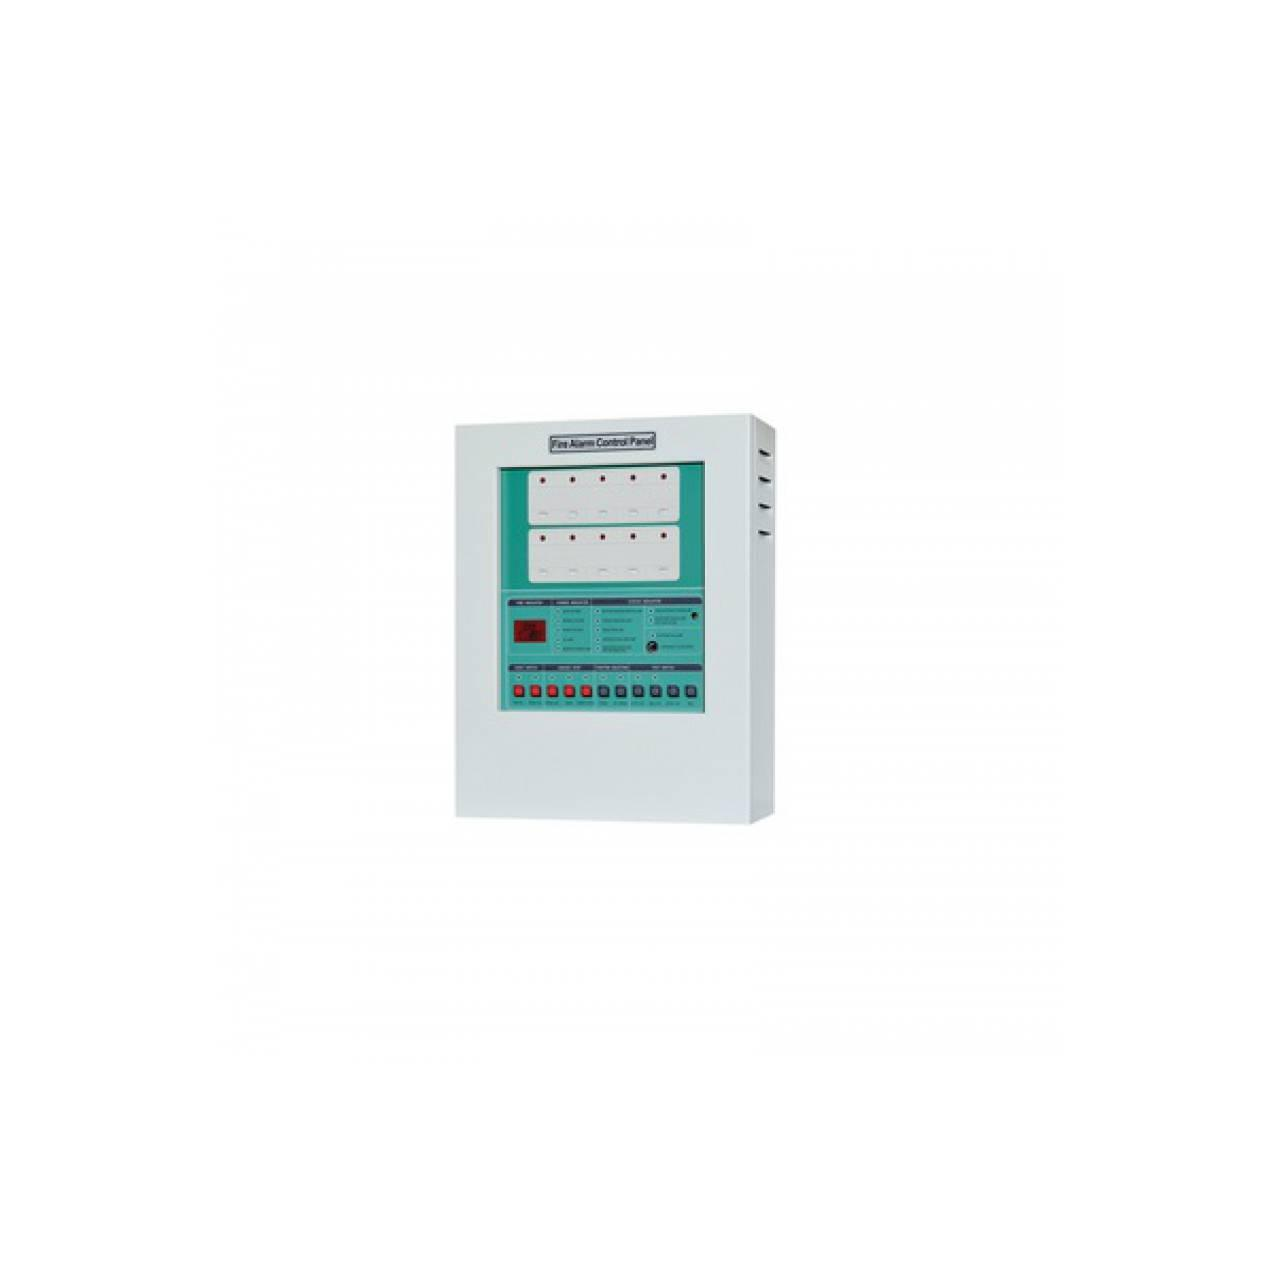 Fire Alarm Control Panel 10 Zone